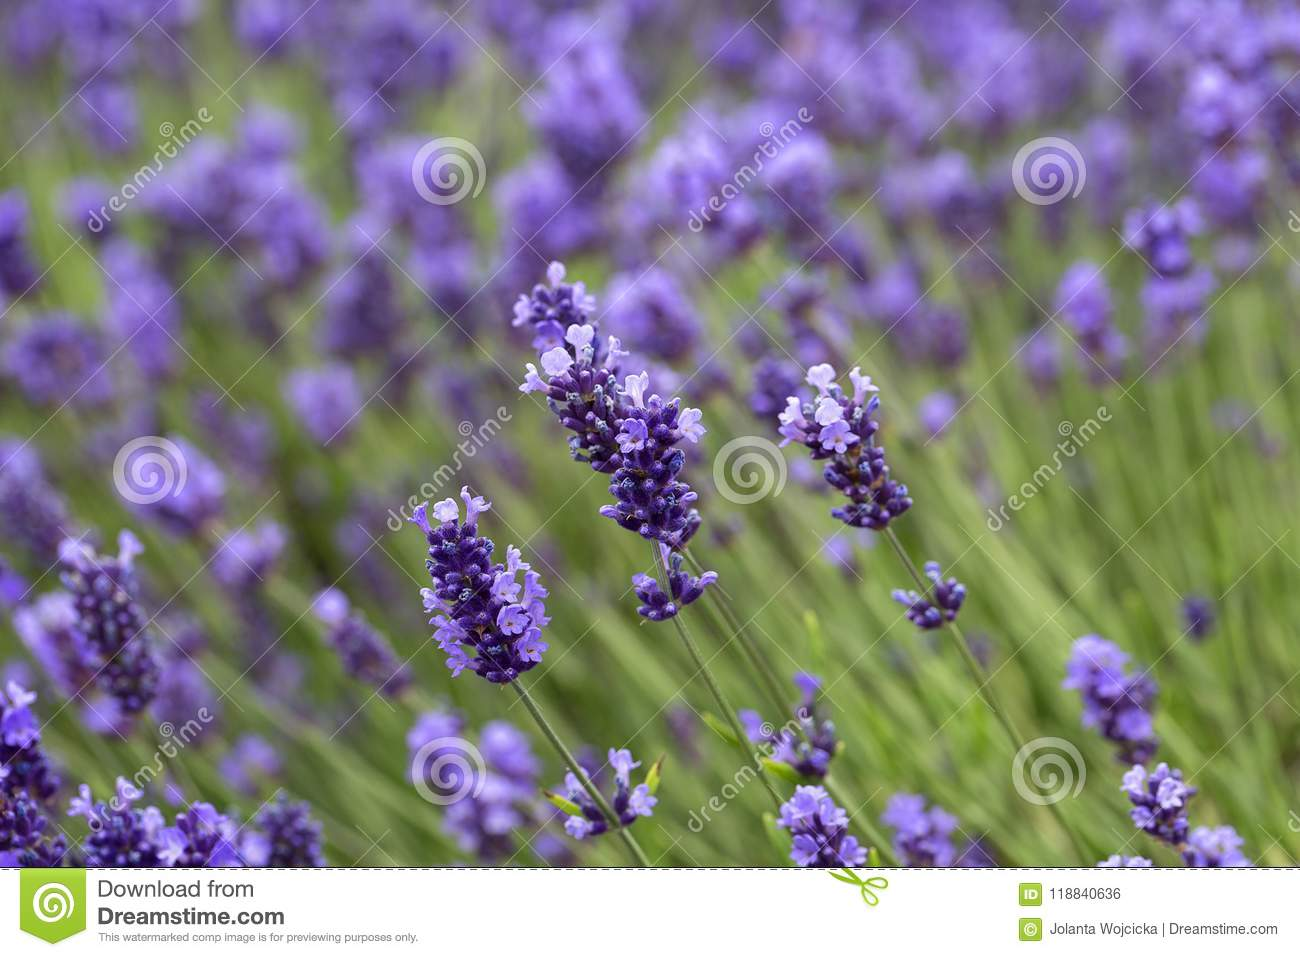 Lavender flowers blooming in the garden beautiful lavender field download lavender flowers blooming in the garden beautiful lavender field stock photo image of izmirmasajfo